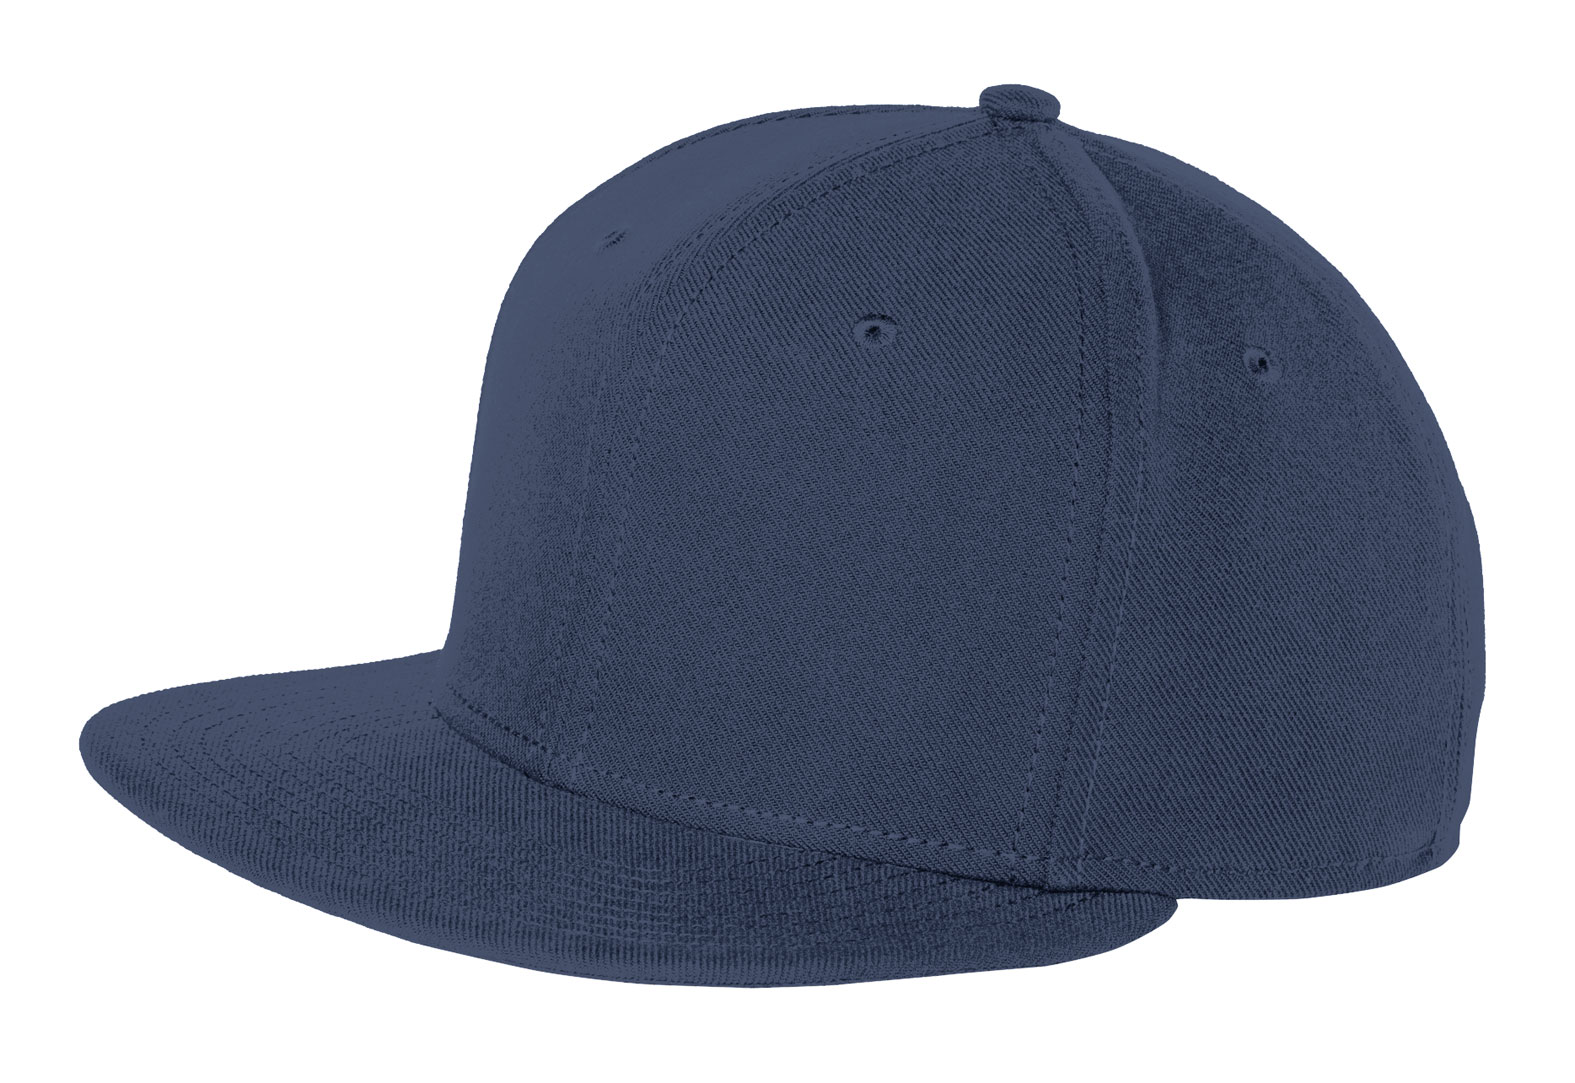 New Era® Original Fit Flat Bill Cap